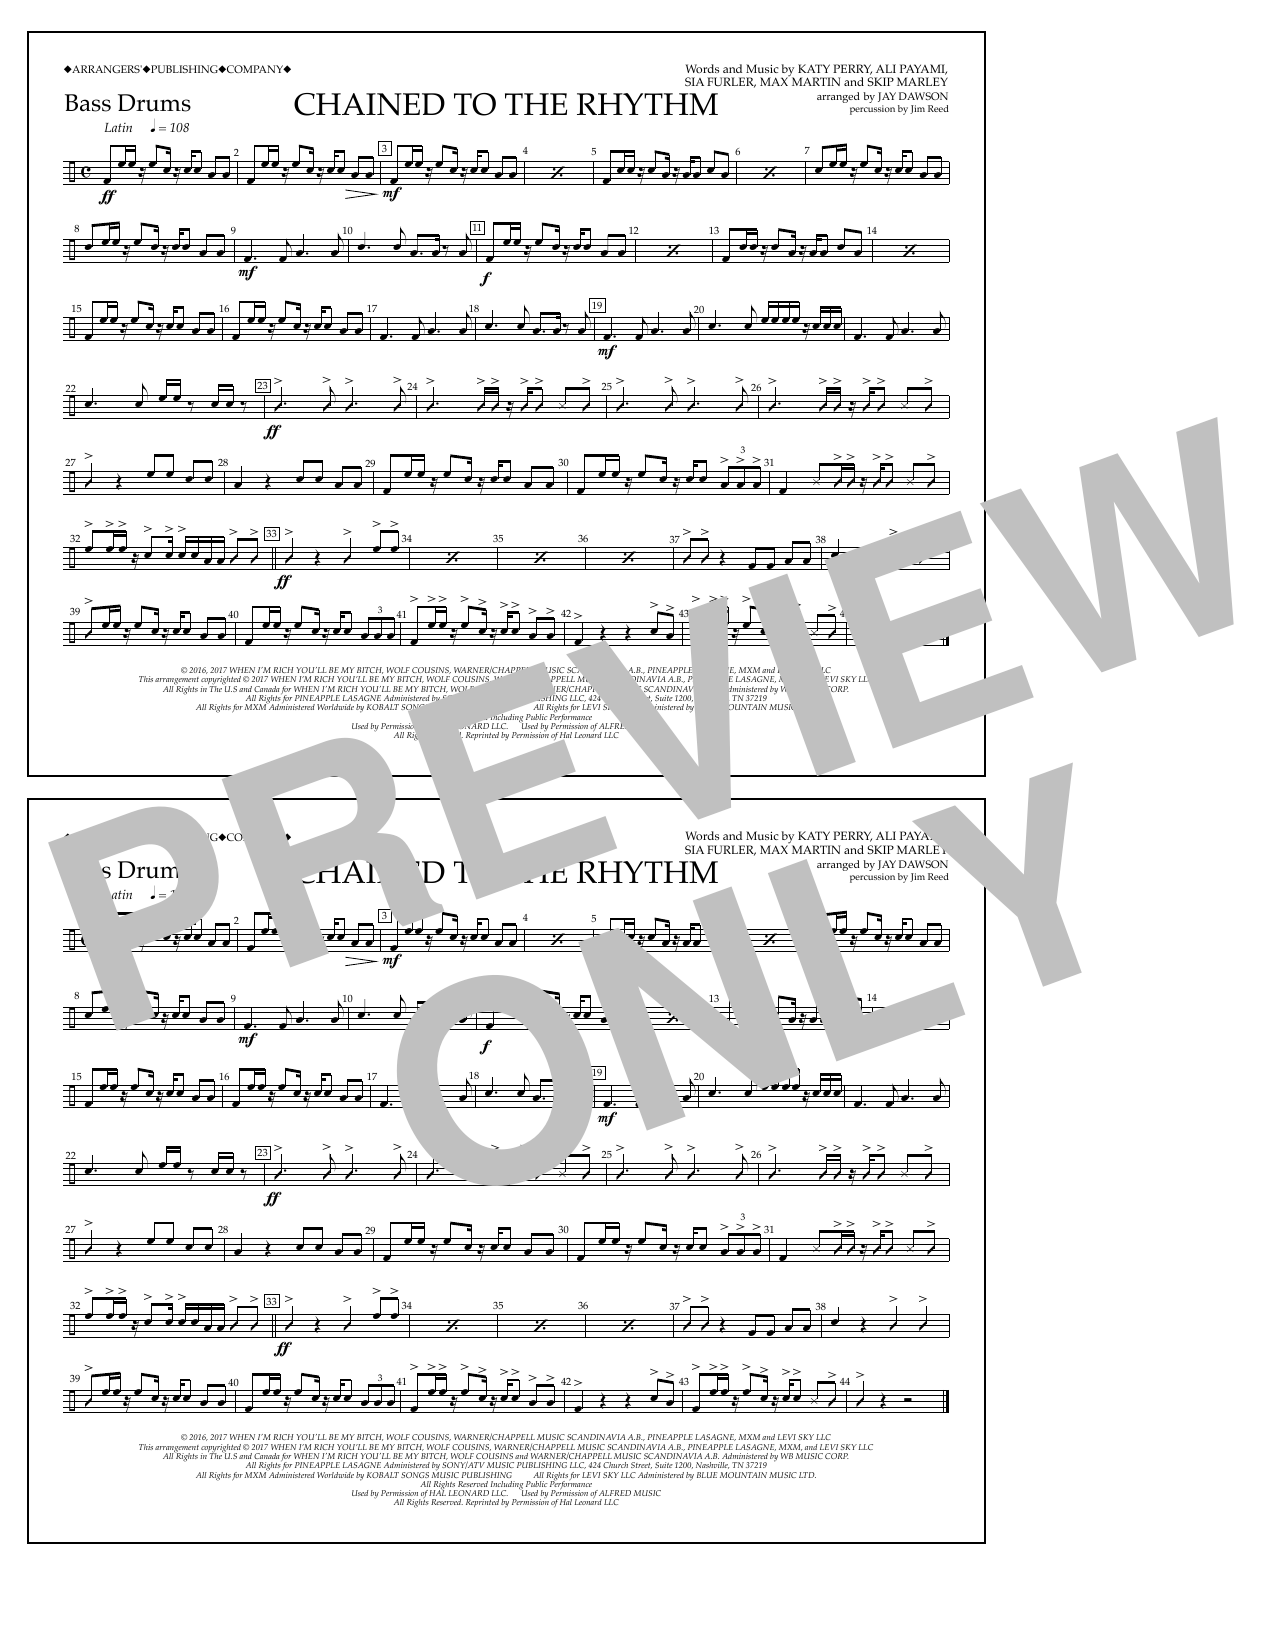 Chained to the Rhythm - Bass Drums Sheet Music